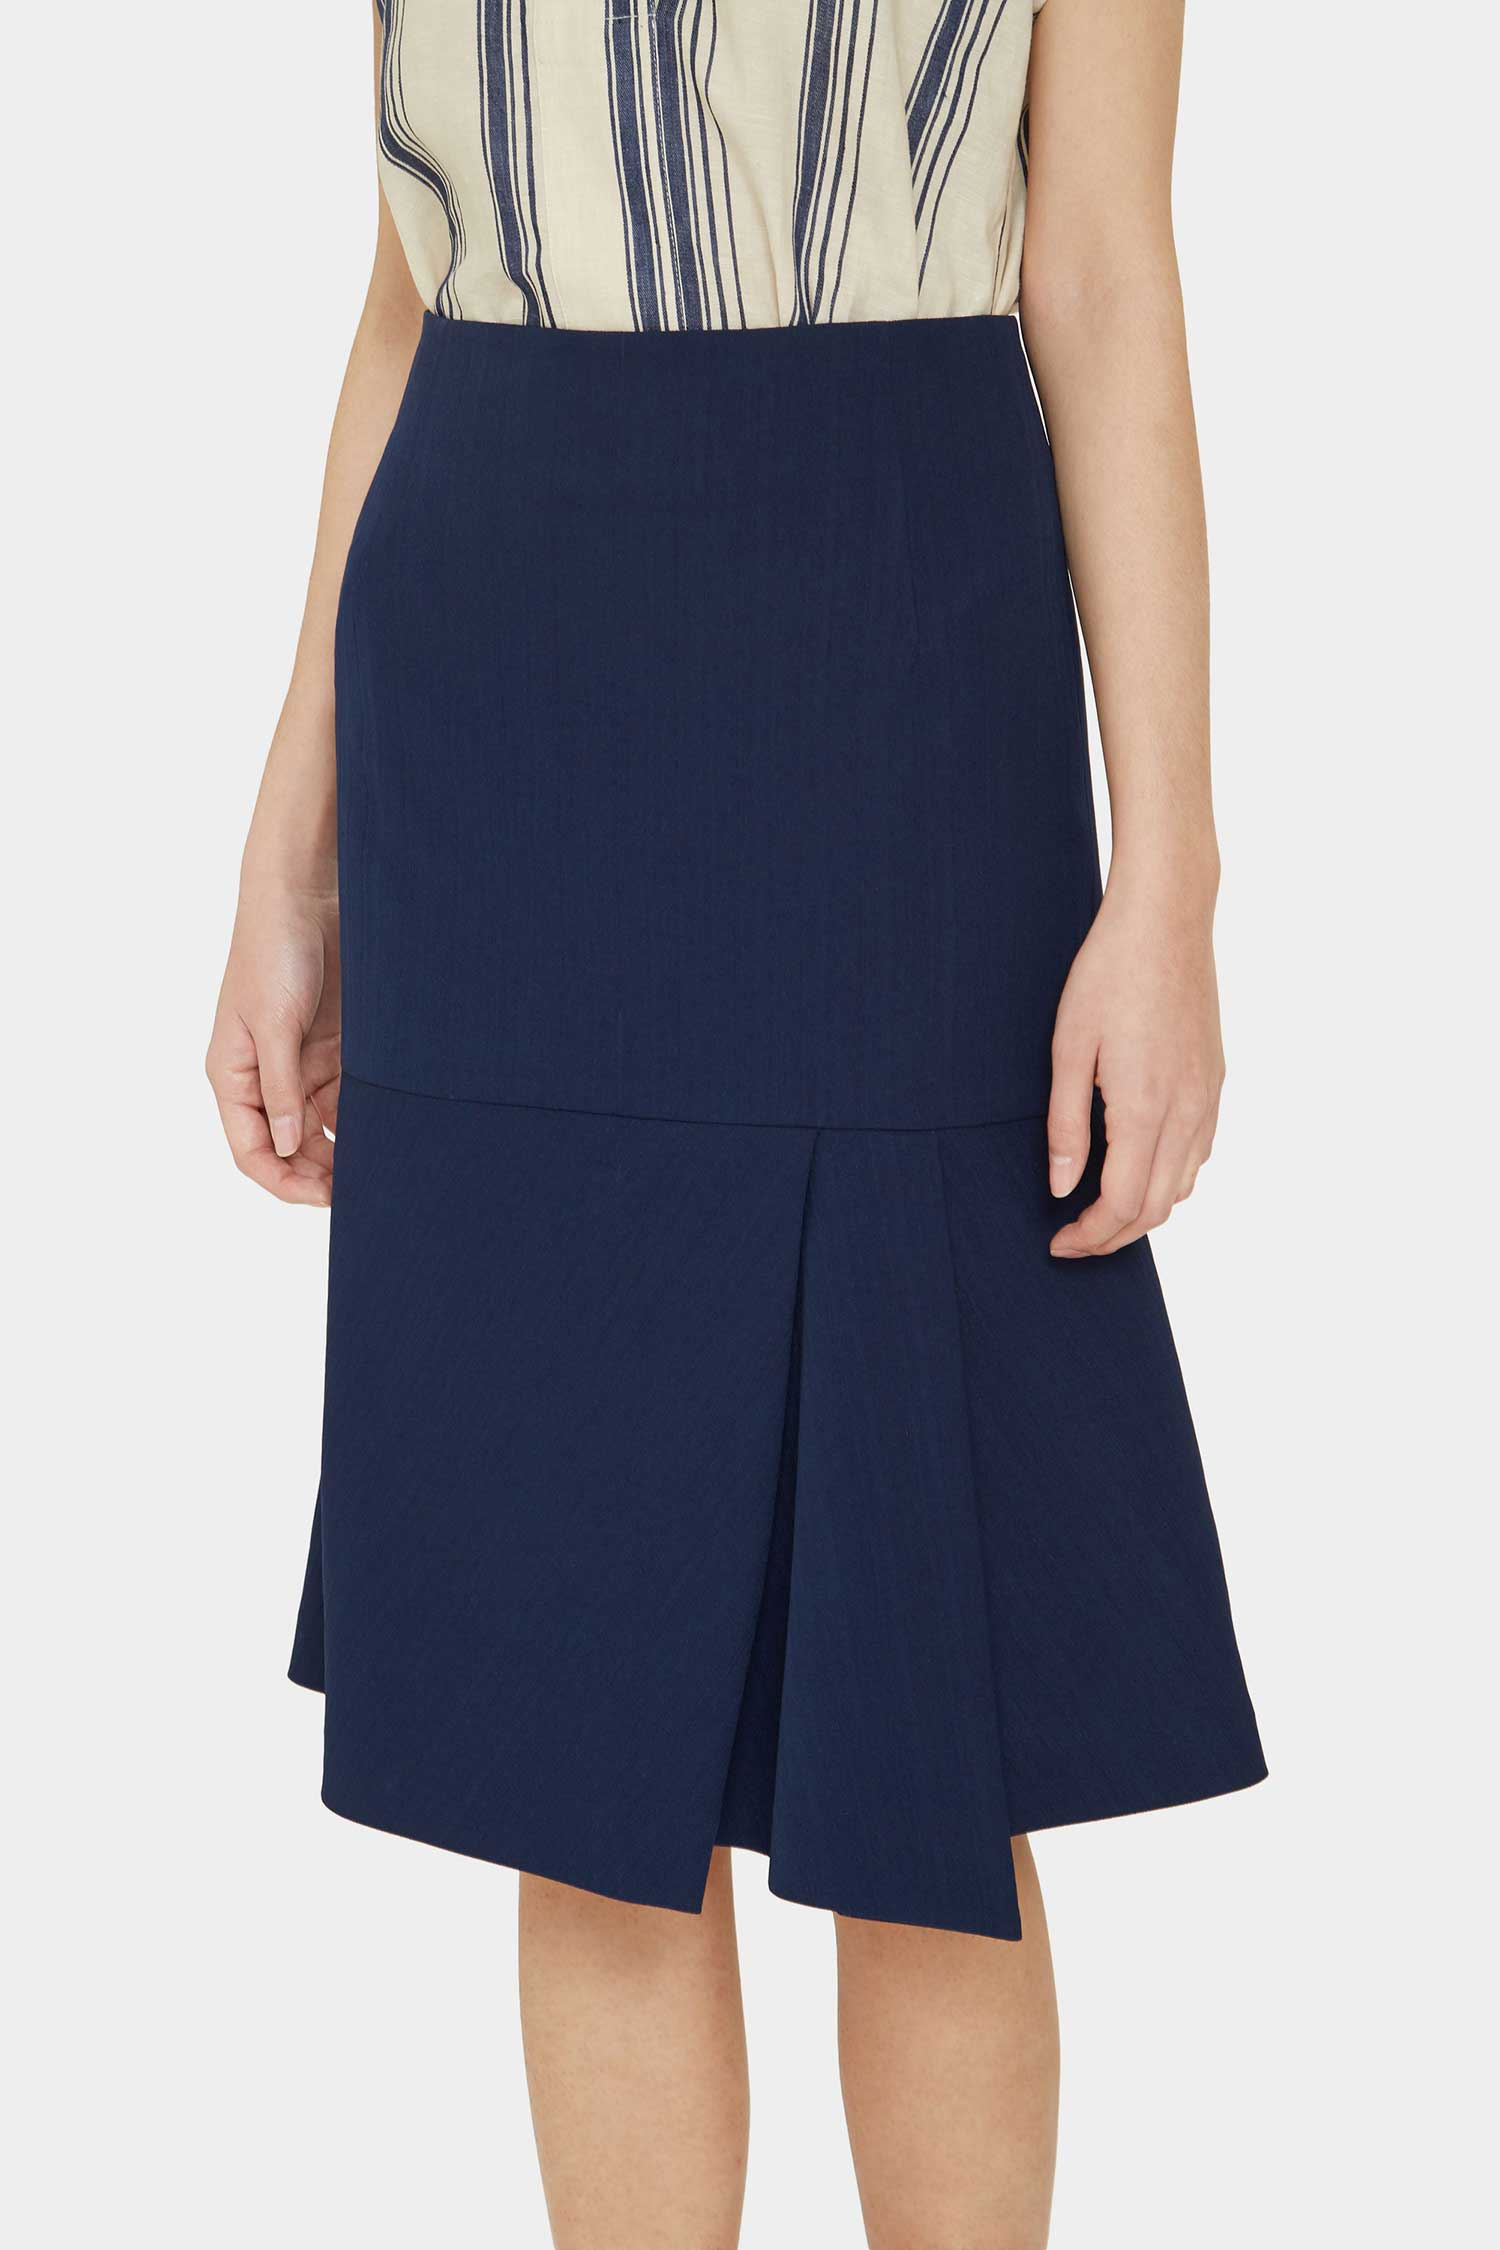 NAVY BETINA SLIT SKIRT